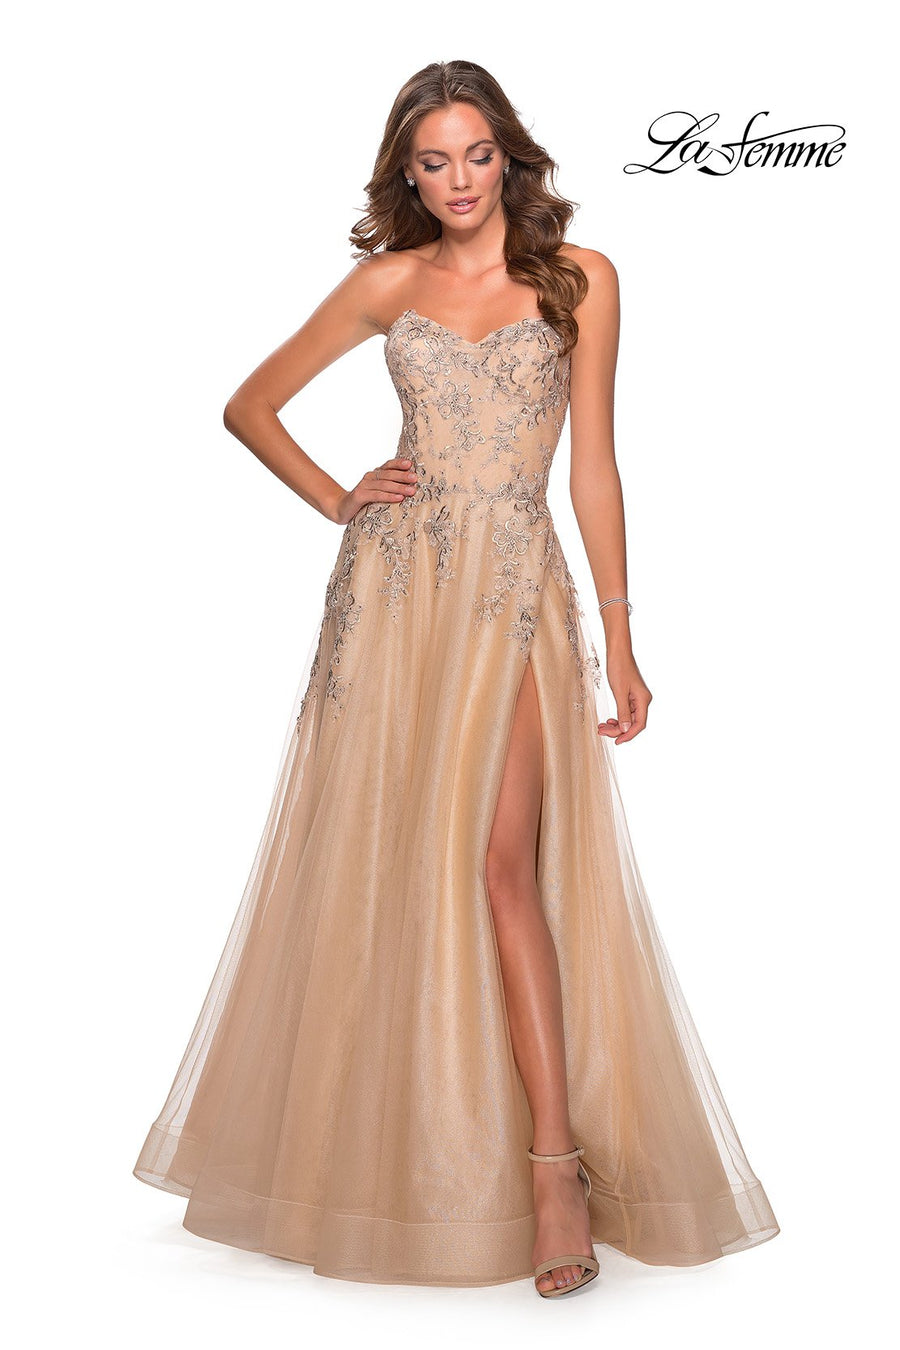 La Femme 28599 prom dress images.  La Femme 28599 is available in these colors: Lilac Mist, Navy, Nude, Wine.